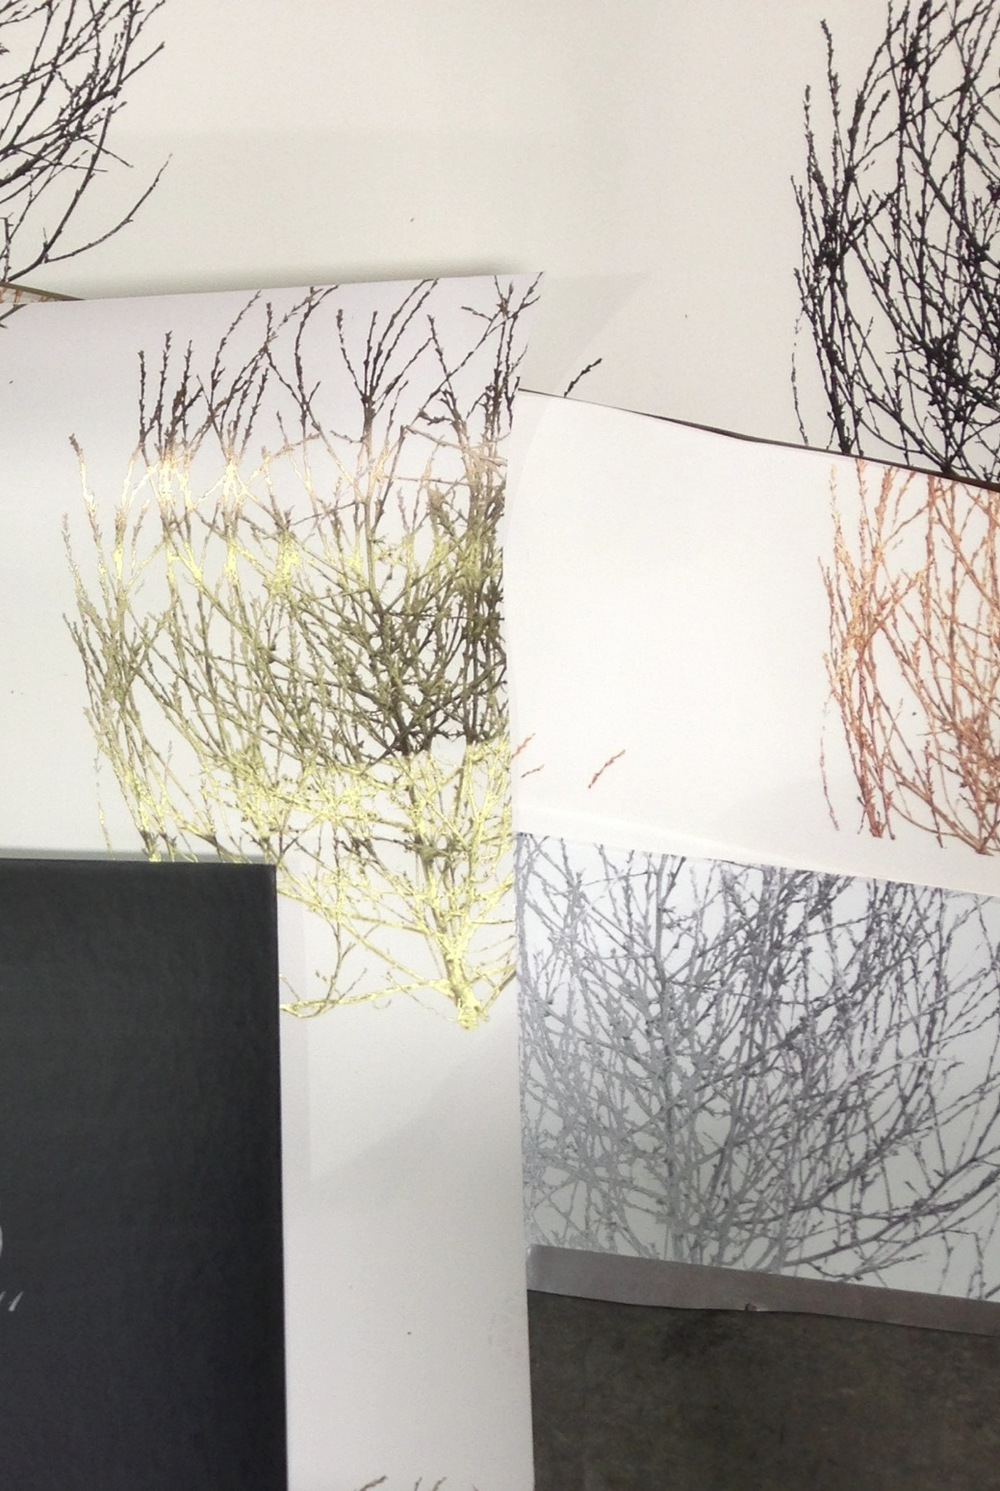 Here are samples of the Tumbleweed Wallpaper in the different color options, soon to be available for purchase.